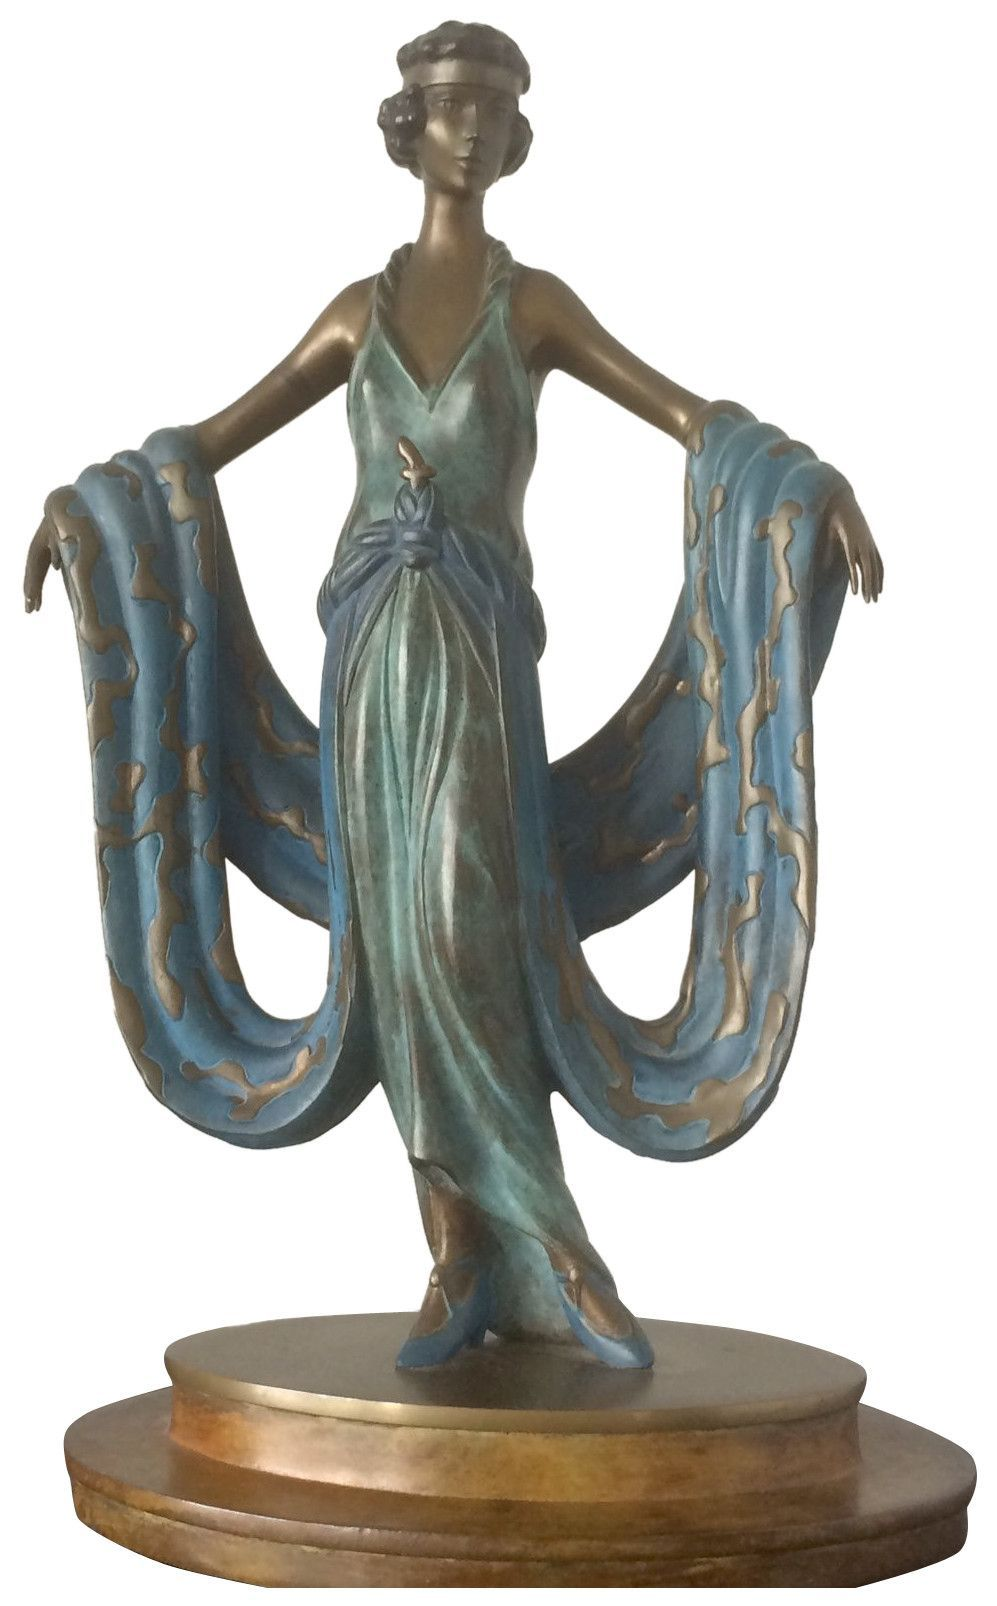 """Art Deco Style Polychromed Bronze Figural Sculpture After """"Gala"""" by Erté (Romain de Tirtoff) (Russian/French, 1892-1990), ca. 1980, ed. 300"""